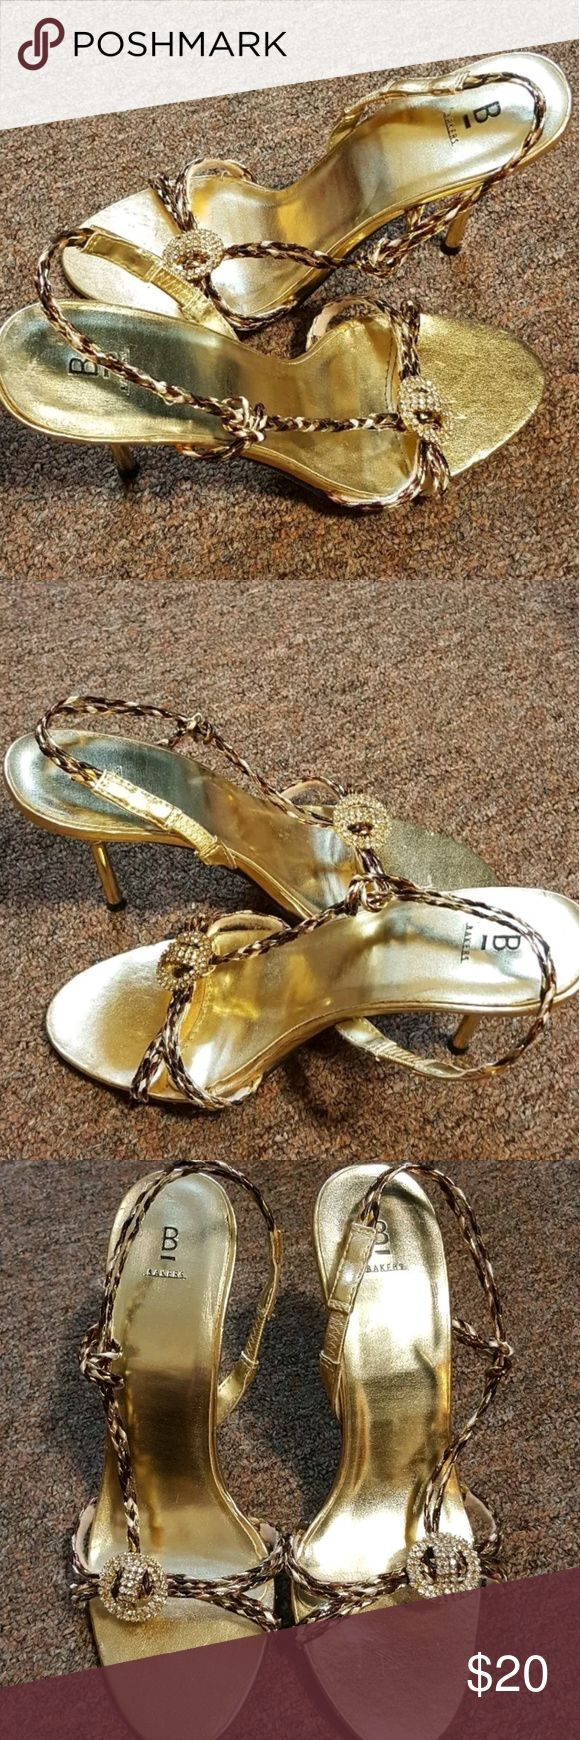 BAKERS Metallic Strappy Heel Sandal BLING Bakers metallic braided strappy sandal heels.  Size 7.5  These shoes are embellished with a rhinestone pendant across the top of the straps.  Heel is gold and has a blingy rhinestone detail.  Very little wear on these shoes however , the insole / instep is slightly loose on one shoe. Bakers Shoes